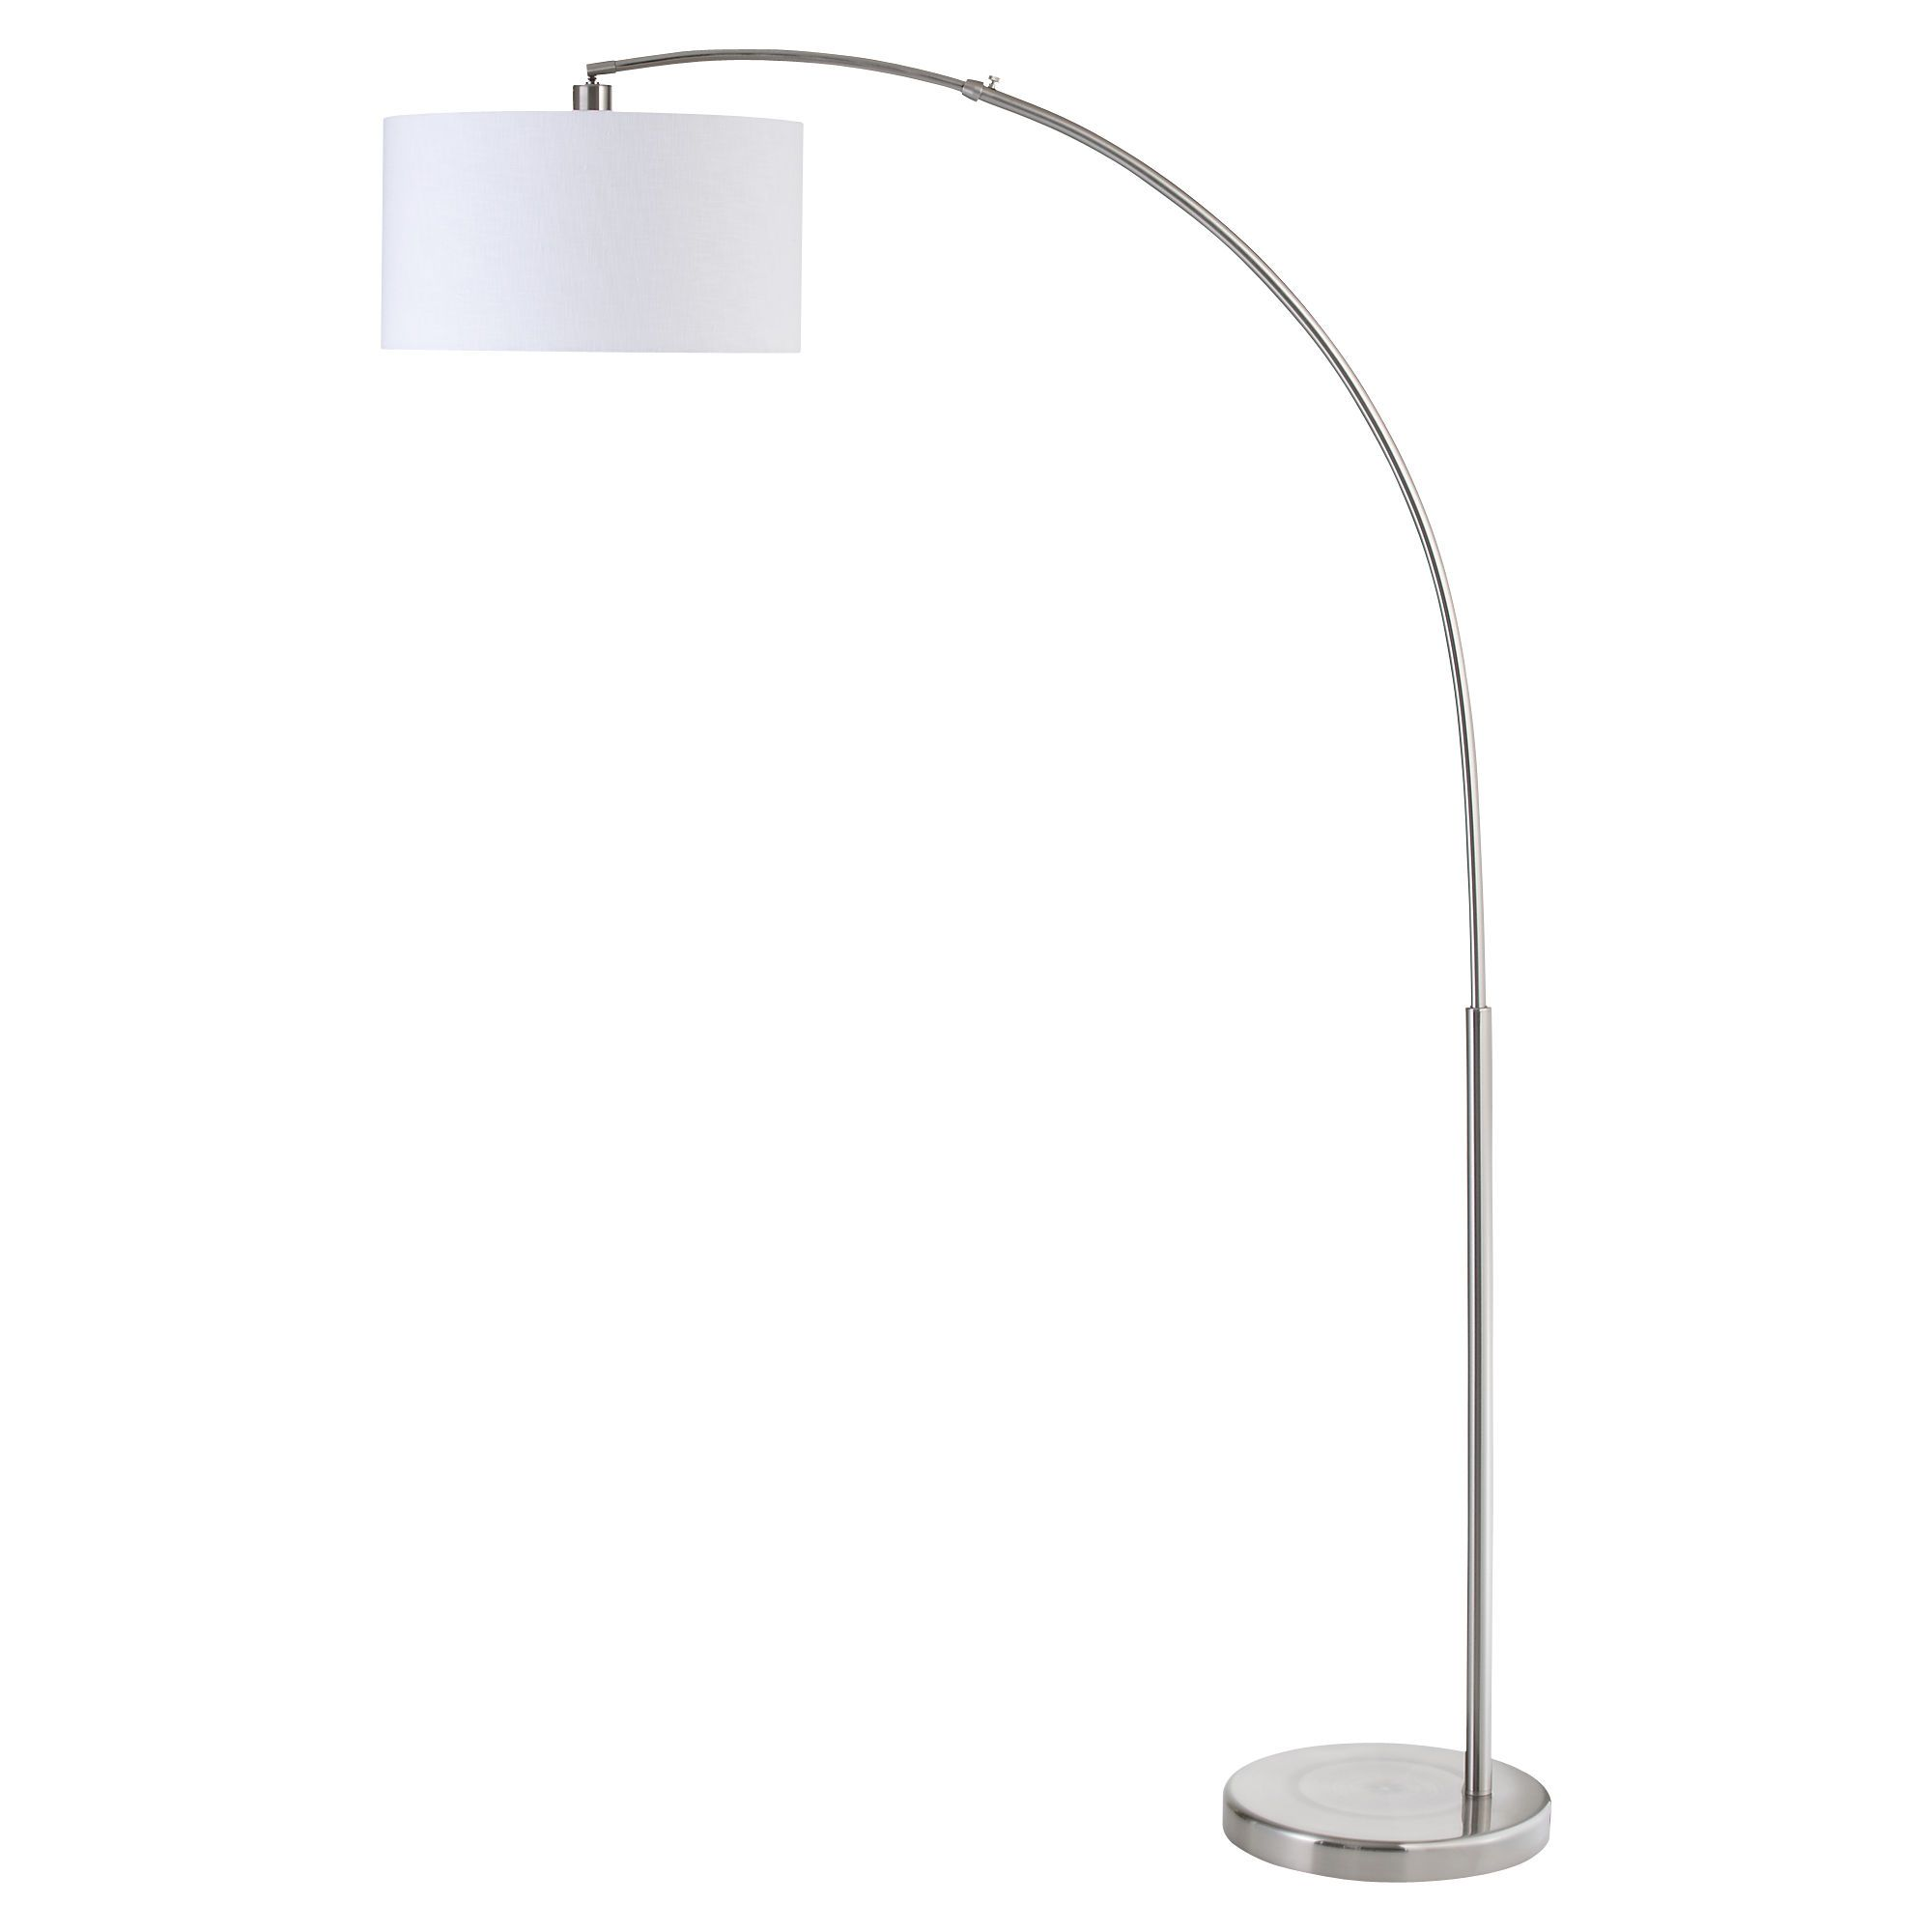 Big dipper arc lamp cfl in floor lamps cb i have it in my bedroom